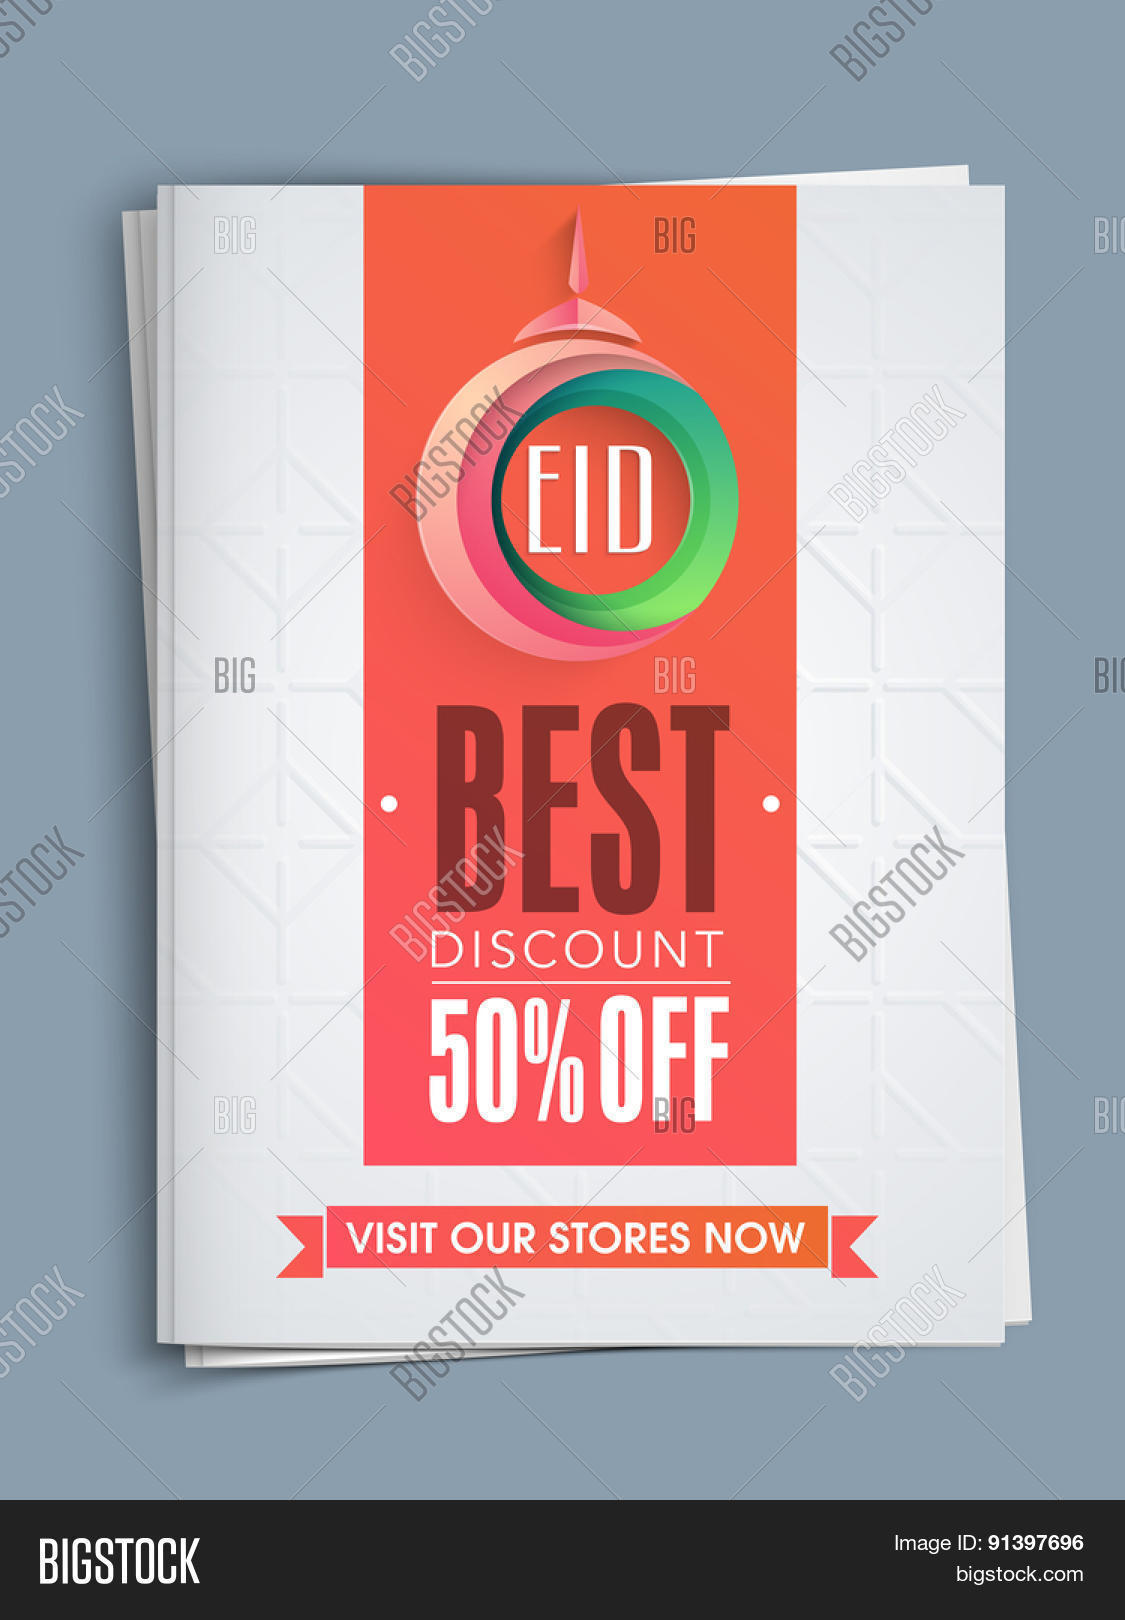 creative template or flyer presentation best discount creative template or flyer presentation best discount offer for muslim community festival eid